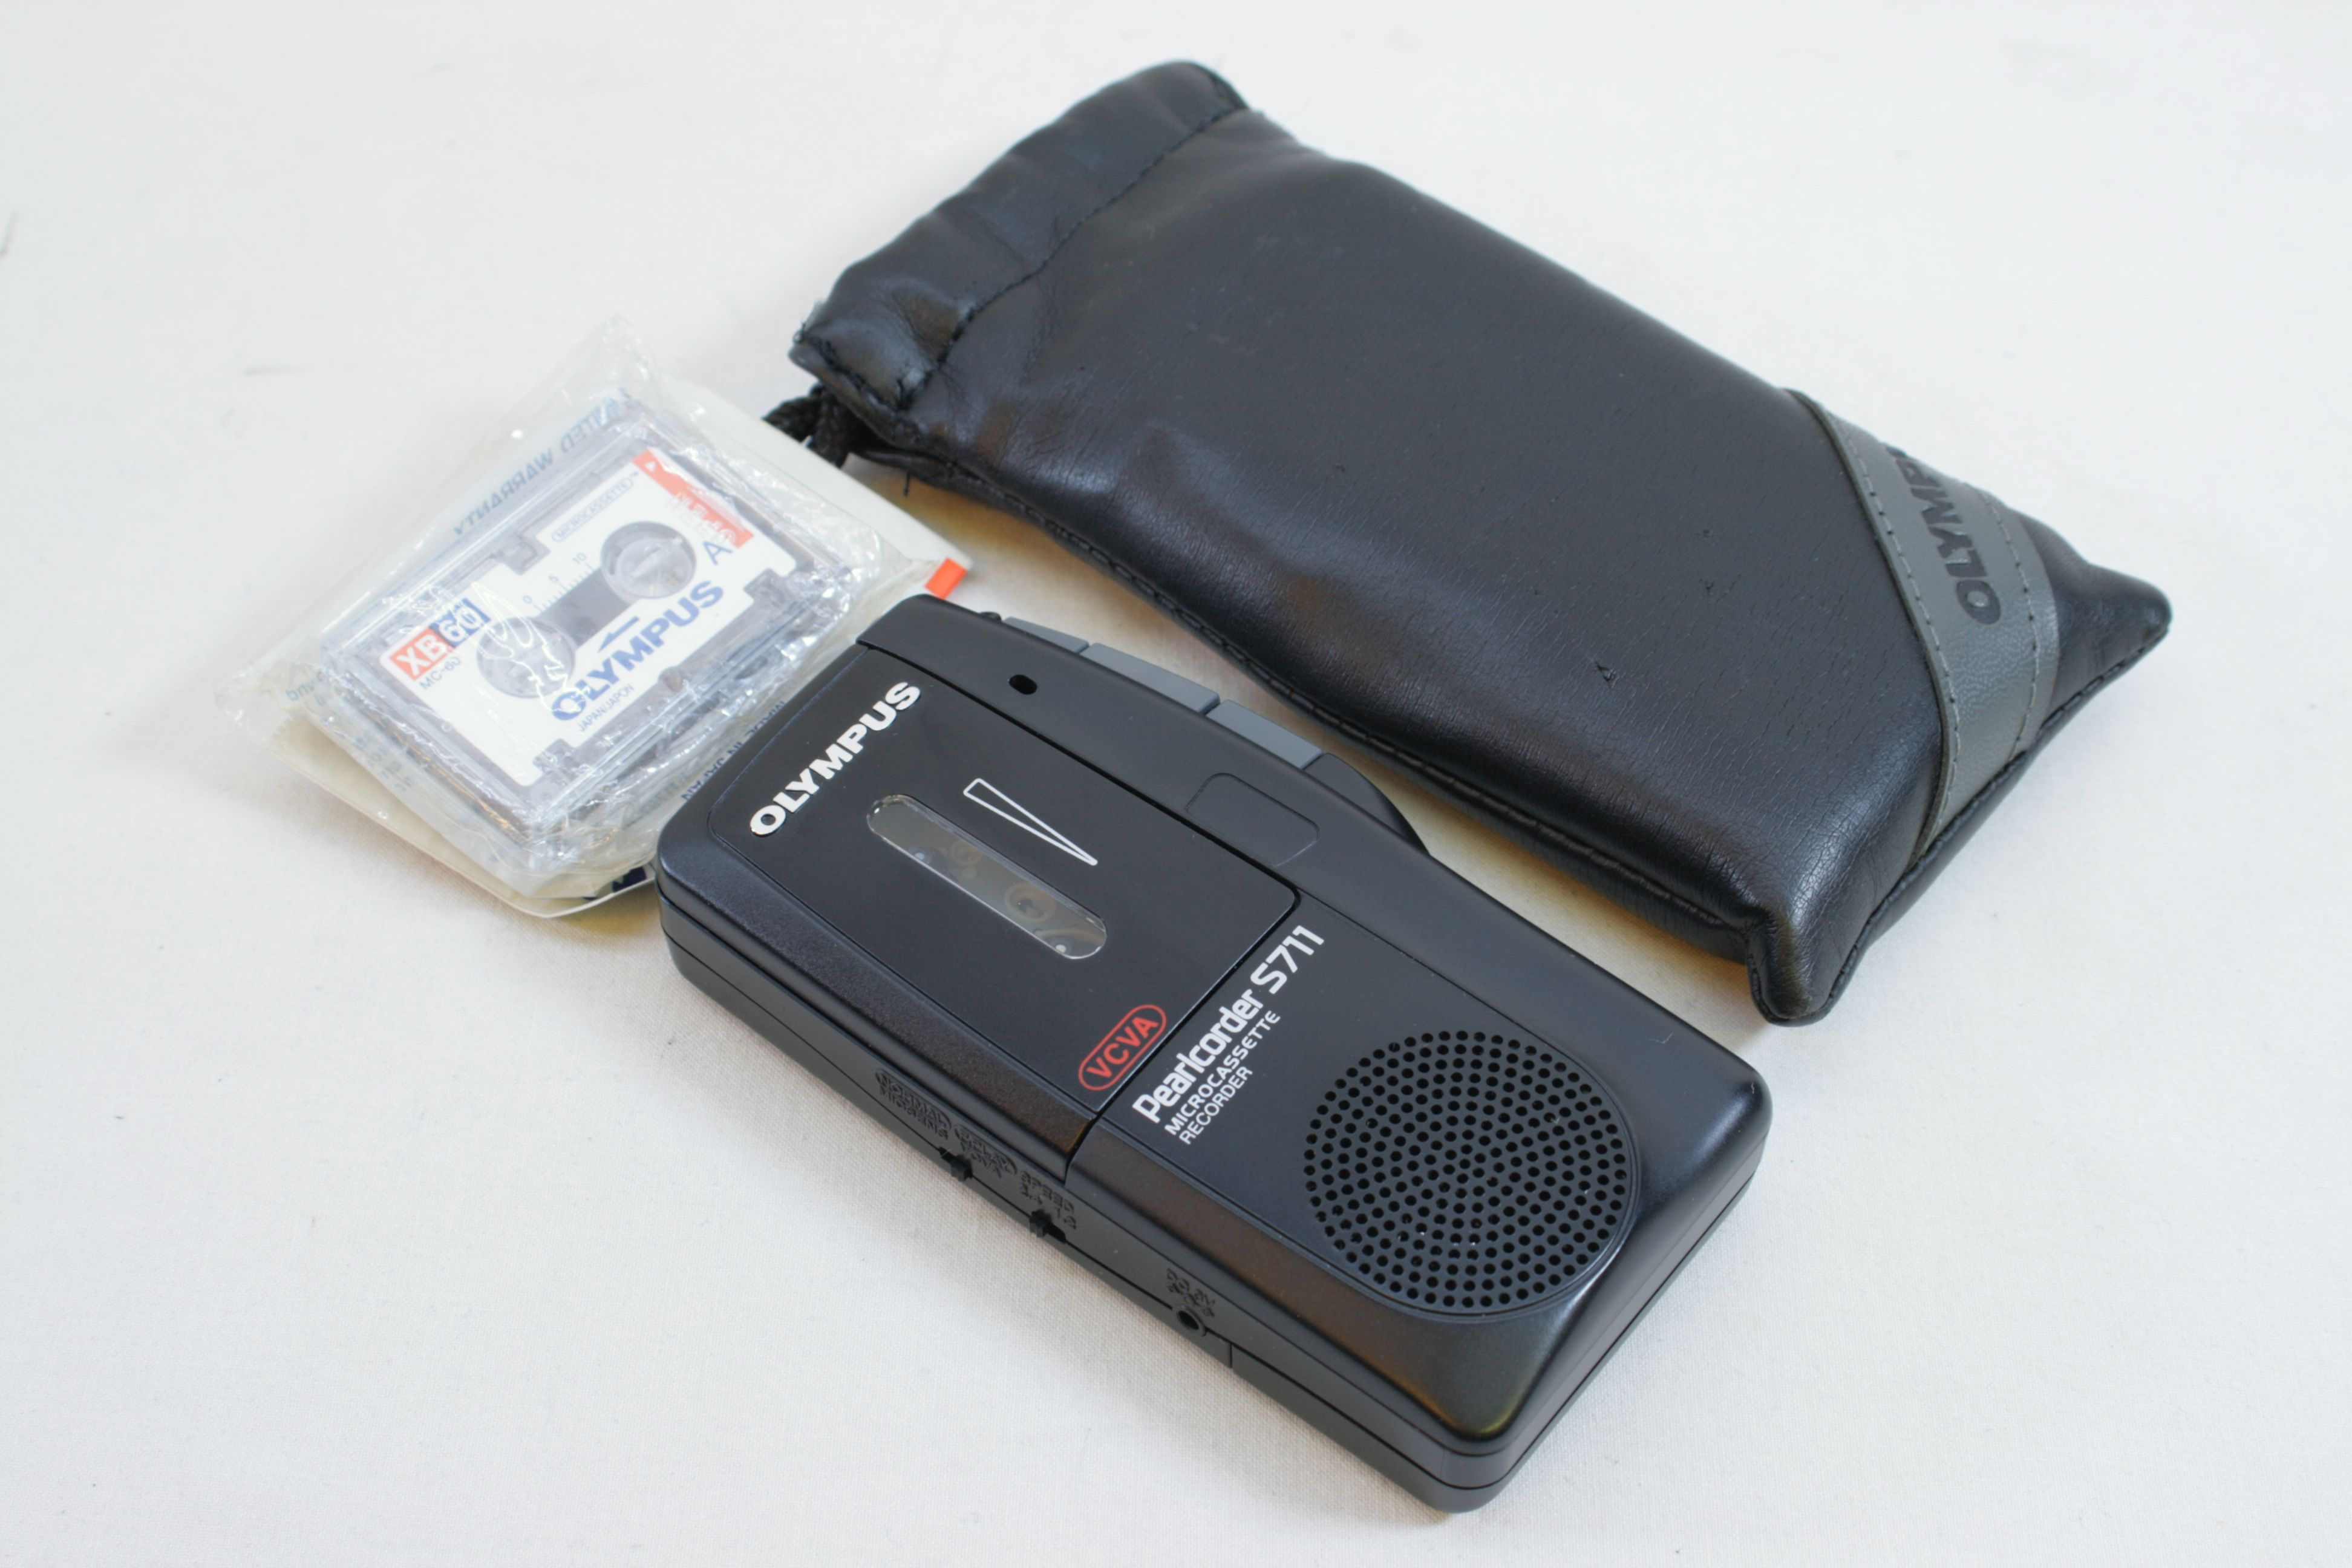 Olympus Pearlcorder S711 Microcassette Handheld Voice Recorder Dictaphone